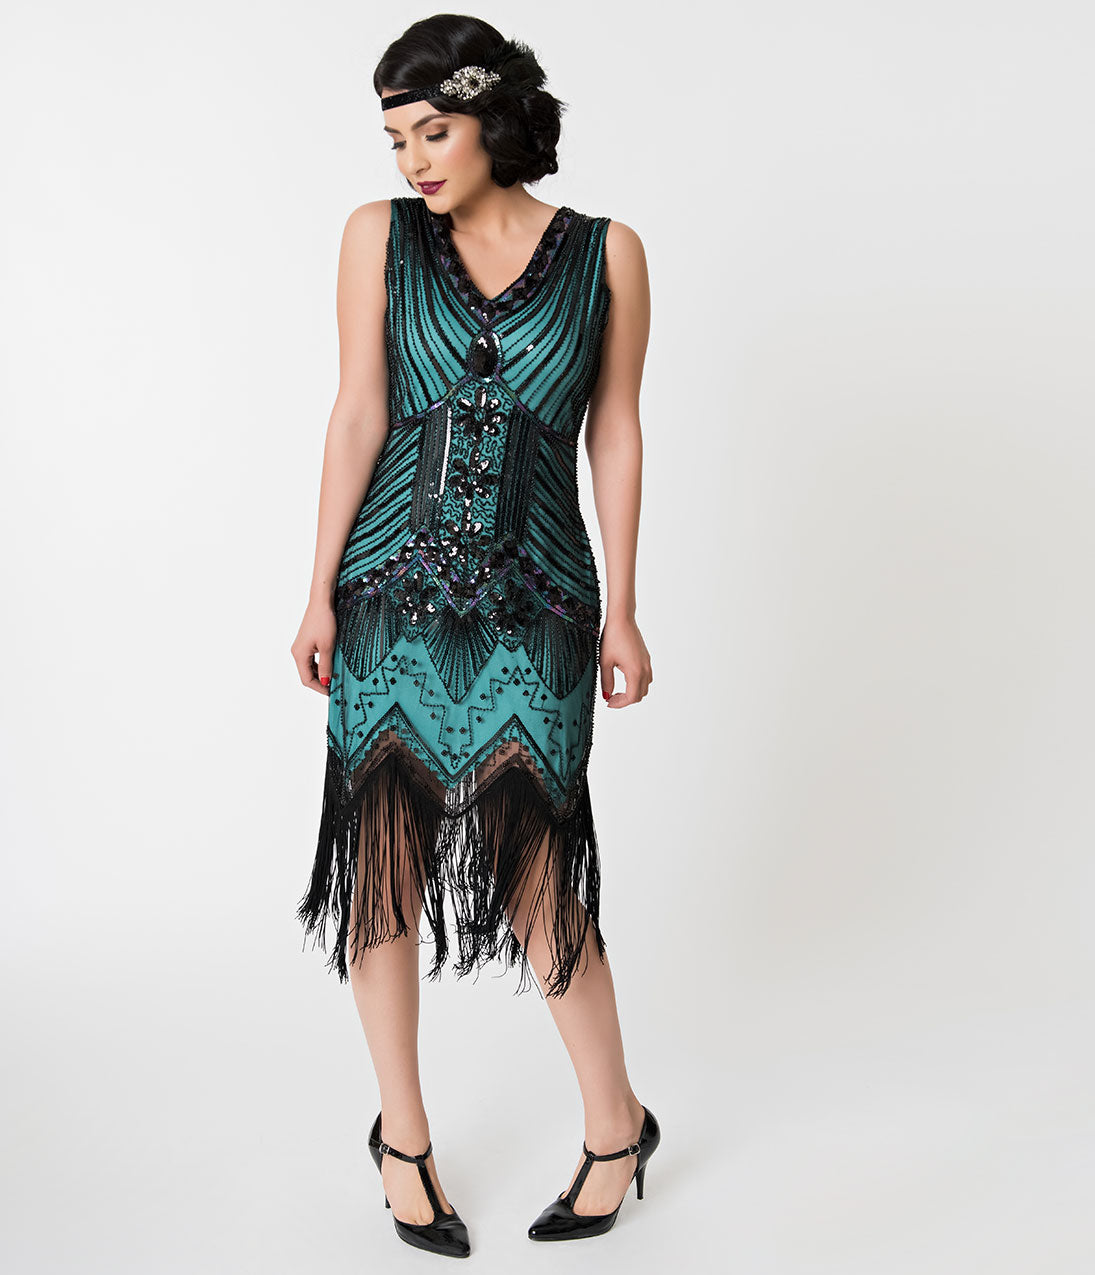 Flapper Dresses & Quality Flapper Costumes Unique Vintage 1920S Deco Teal  Black Veronique Fringe Flapper Dress $98.00 AT vintagedancer.com